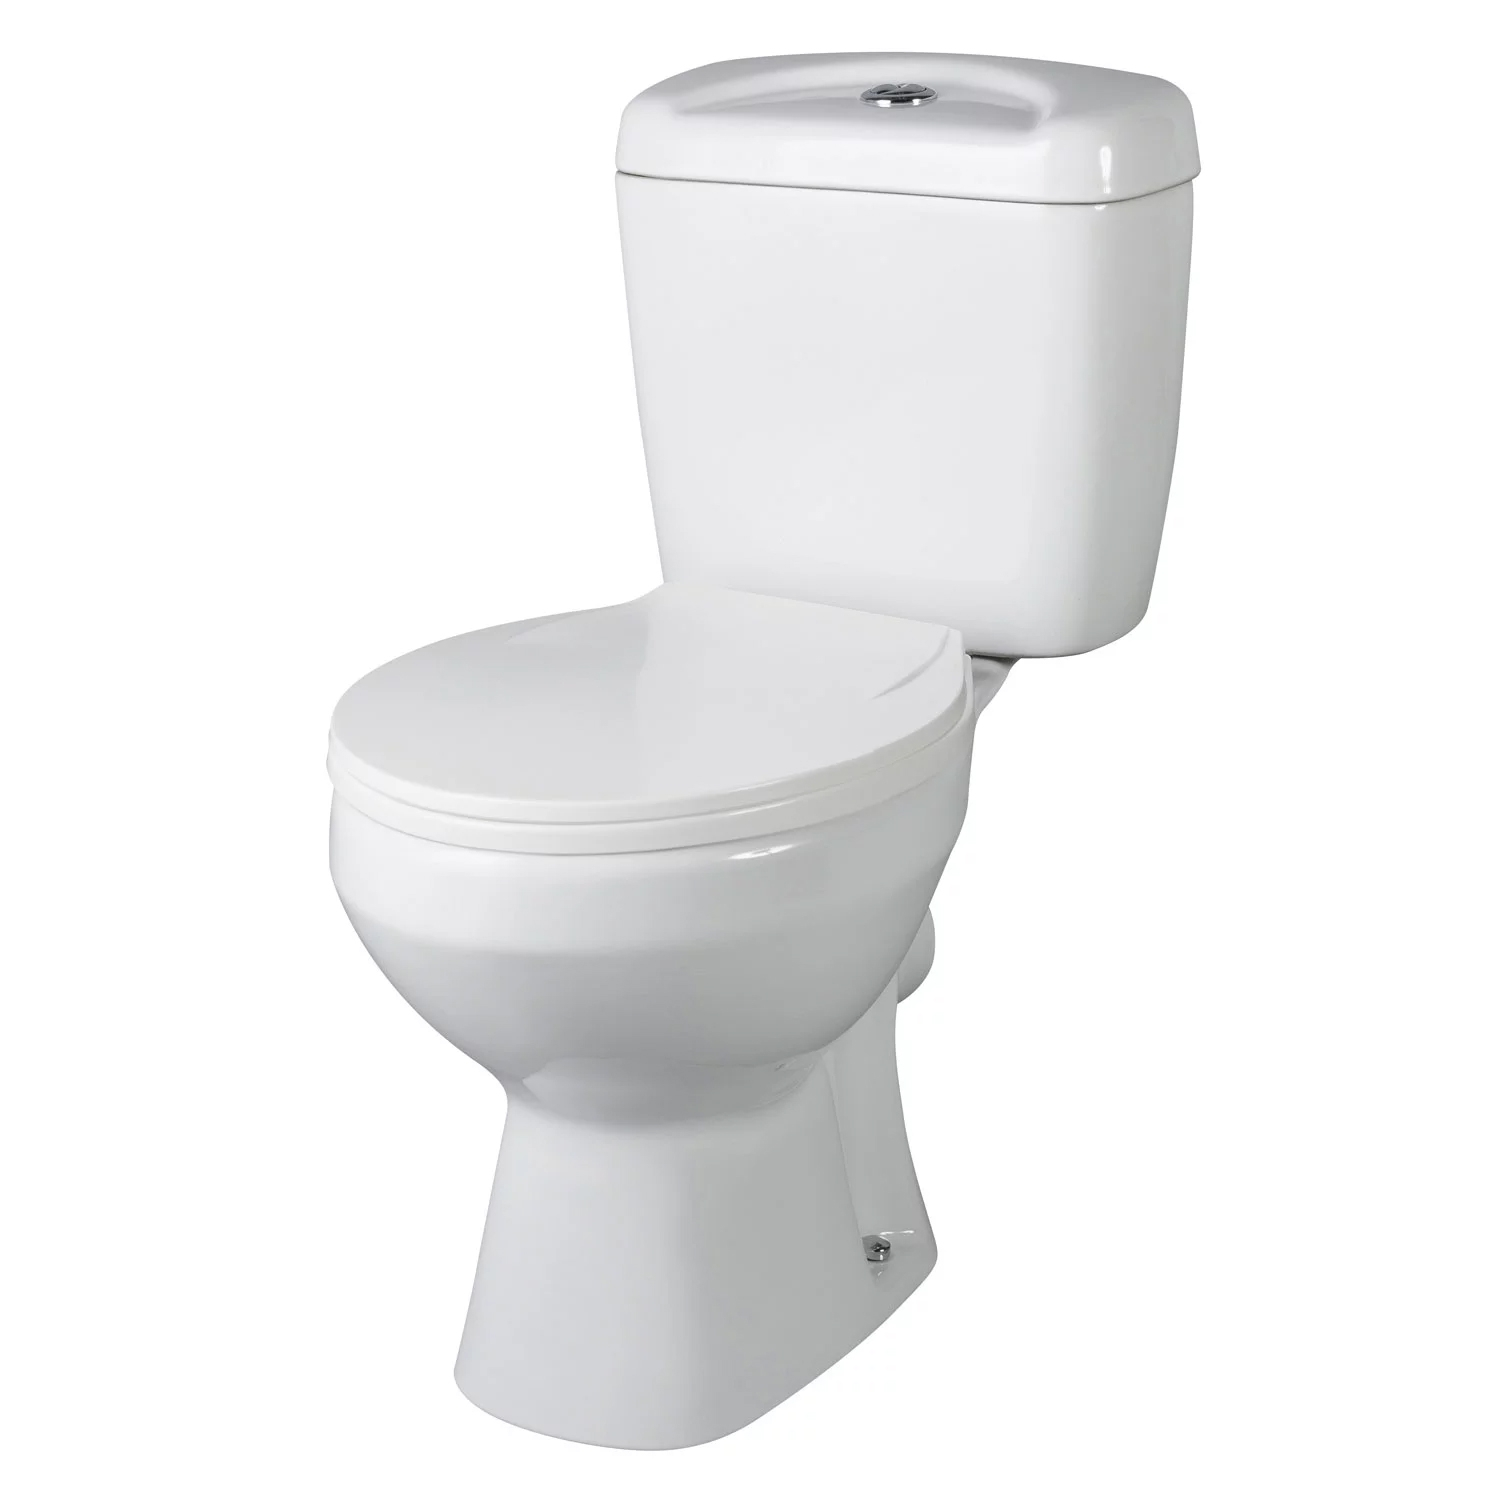 Nuie Melbourne Close Coupled Toilet with Push Button Cistern - Standard Seat